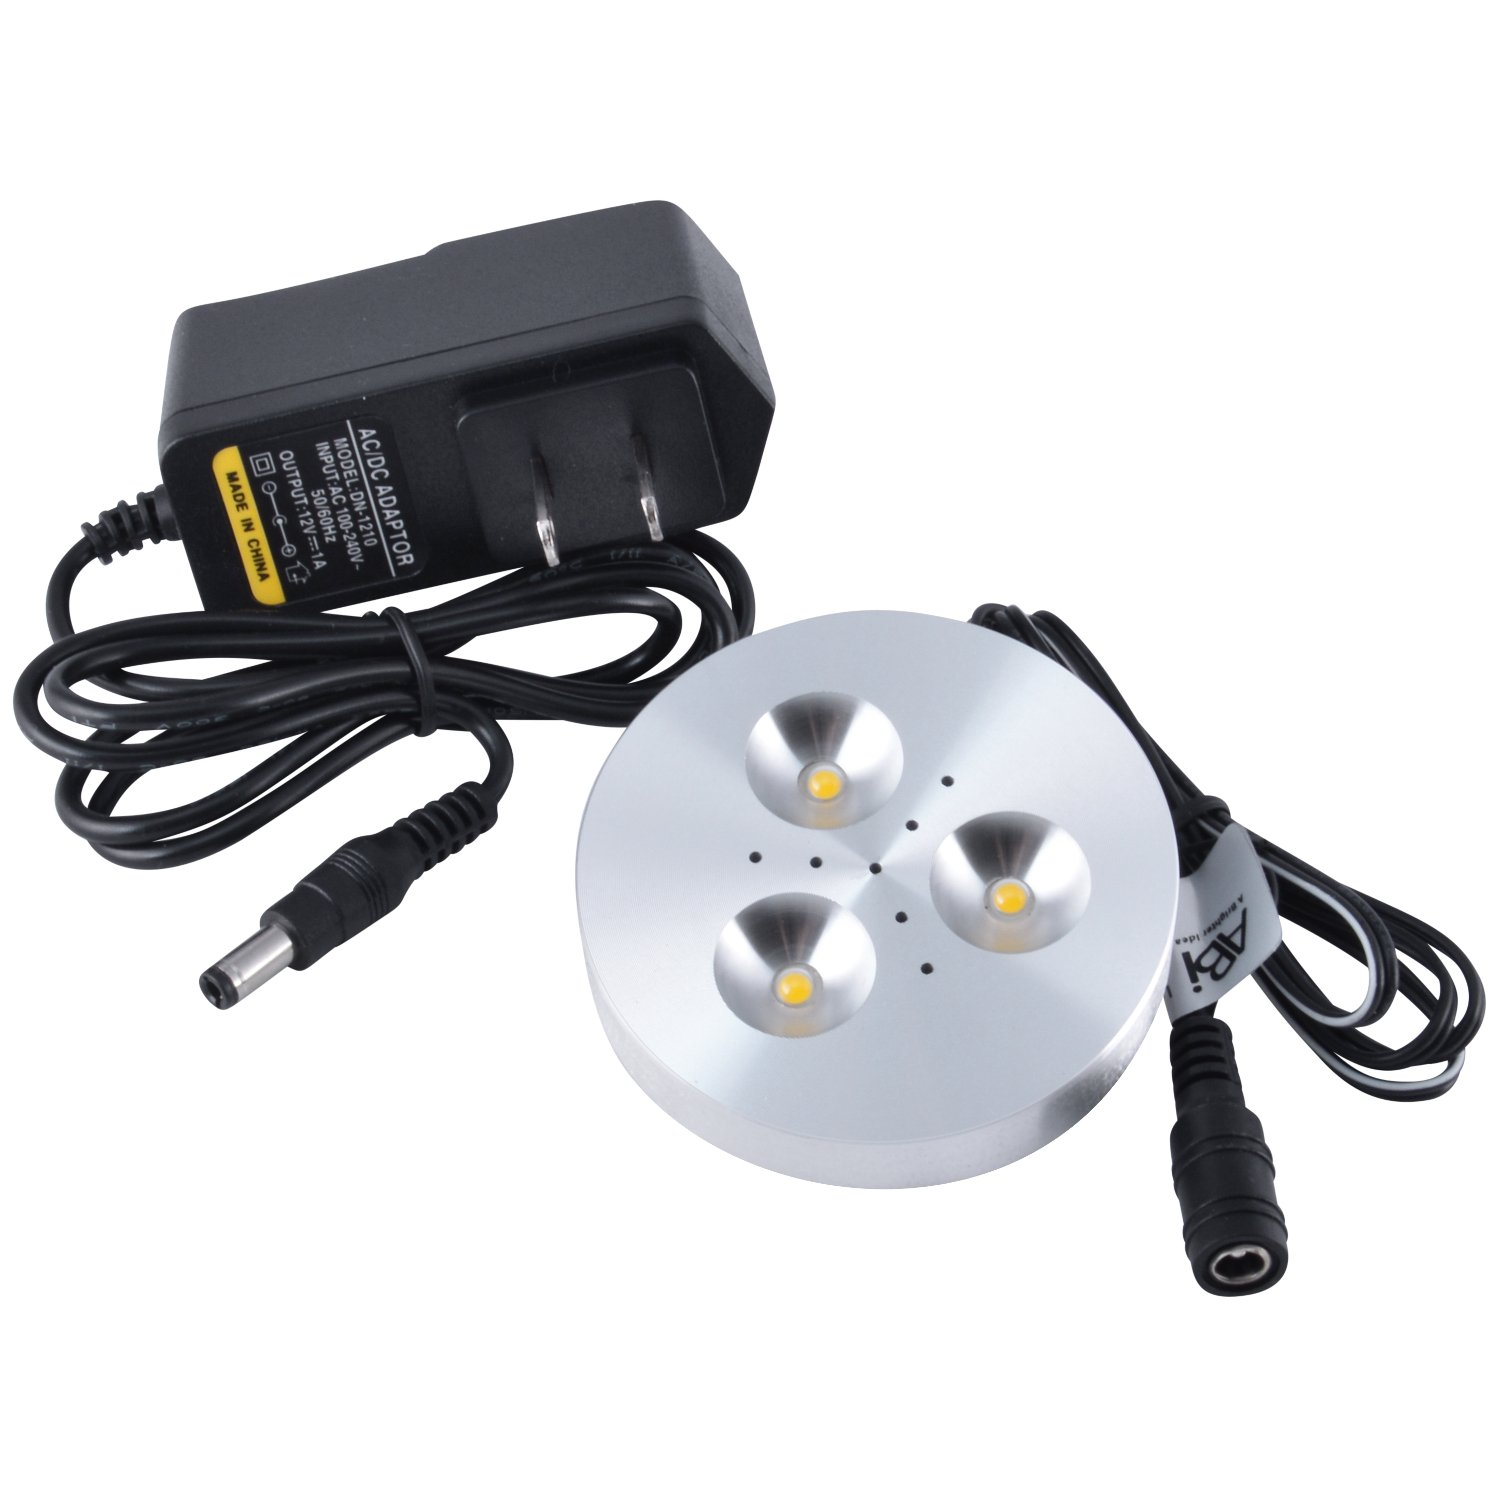 abi 3w led puck light kit with adapter for under cabinet